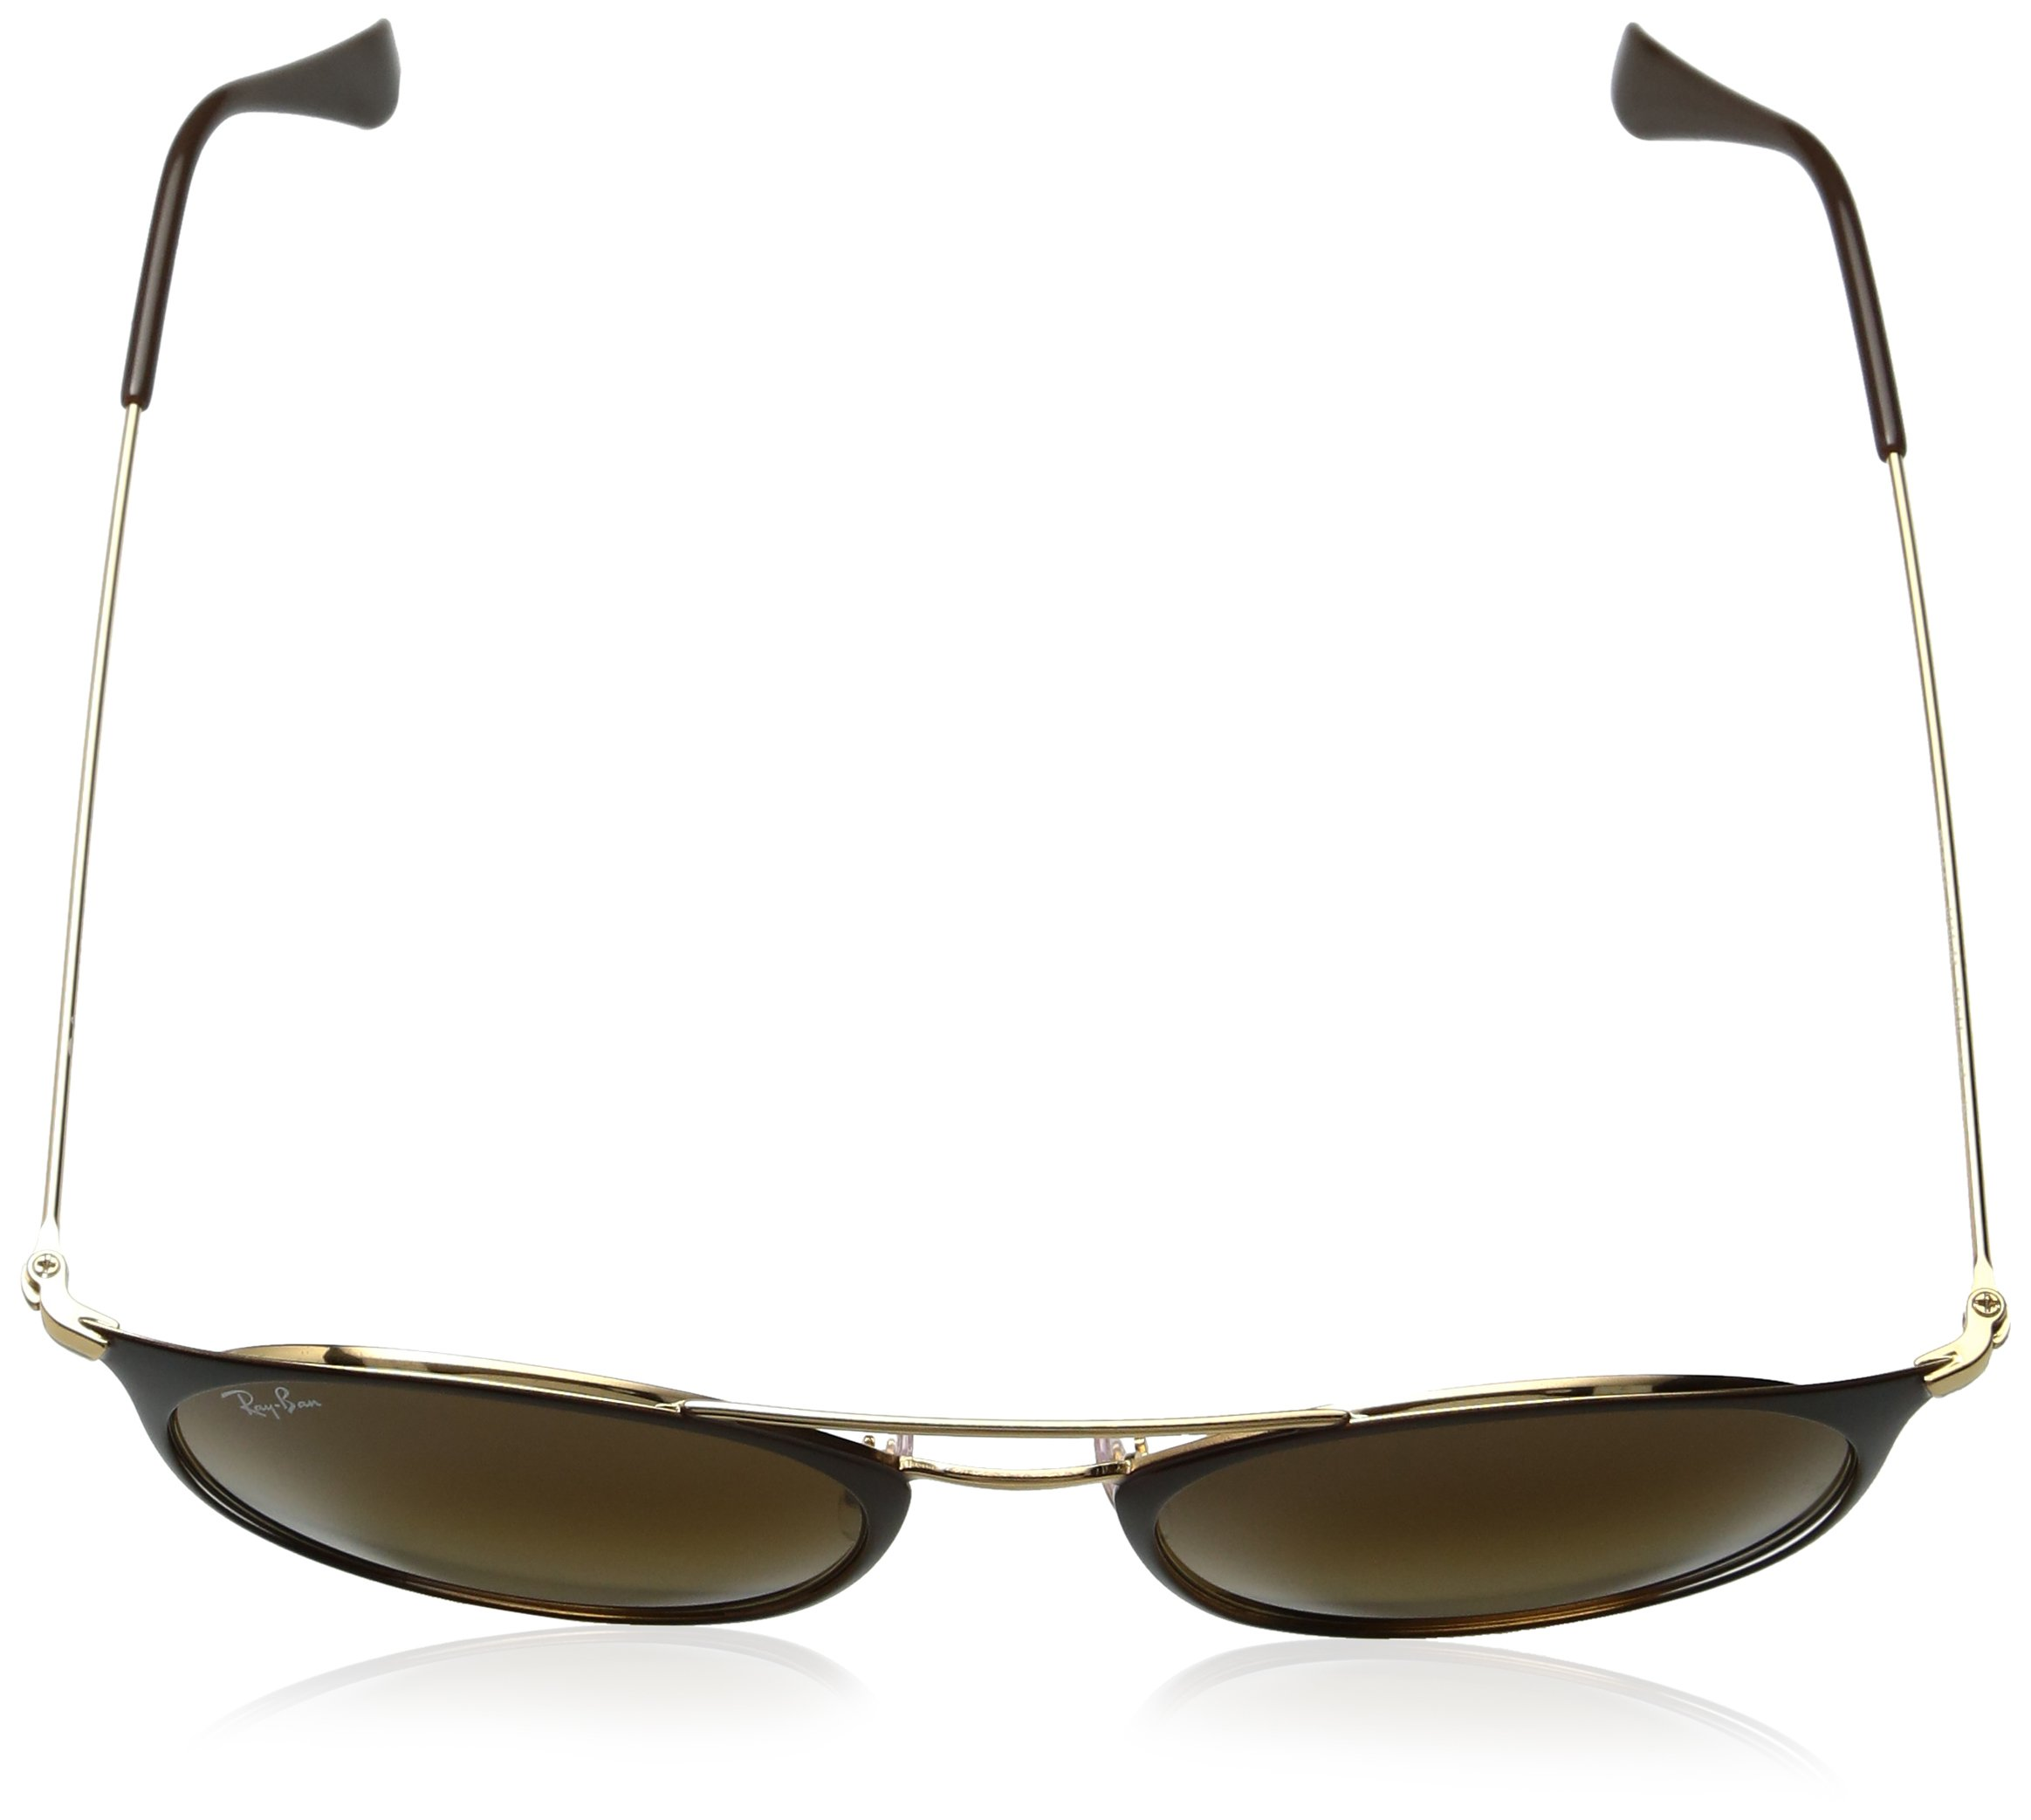 Ray-Ban Steel Unisex Round Sunglasses, Gold Top Brown, 52 mm by Ray-Ban (Image #4)